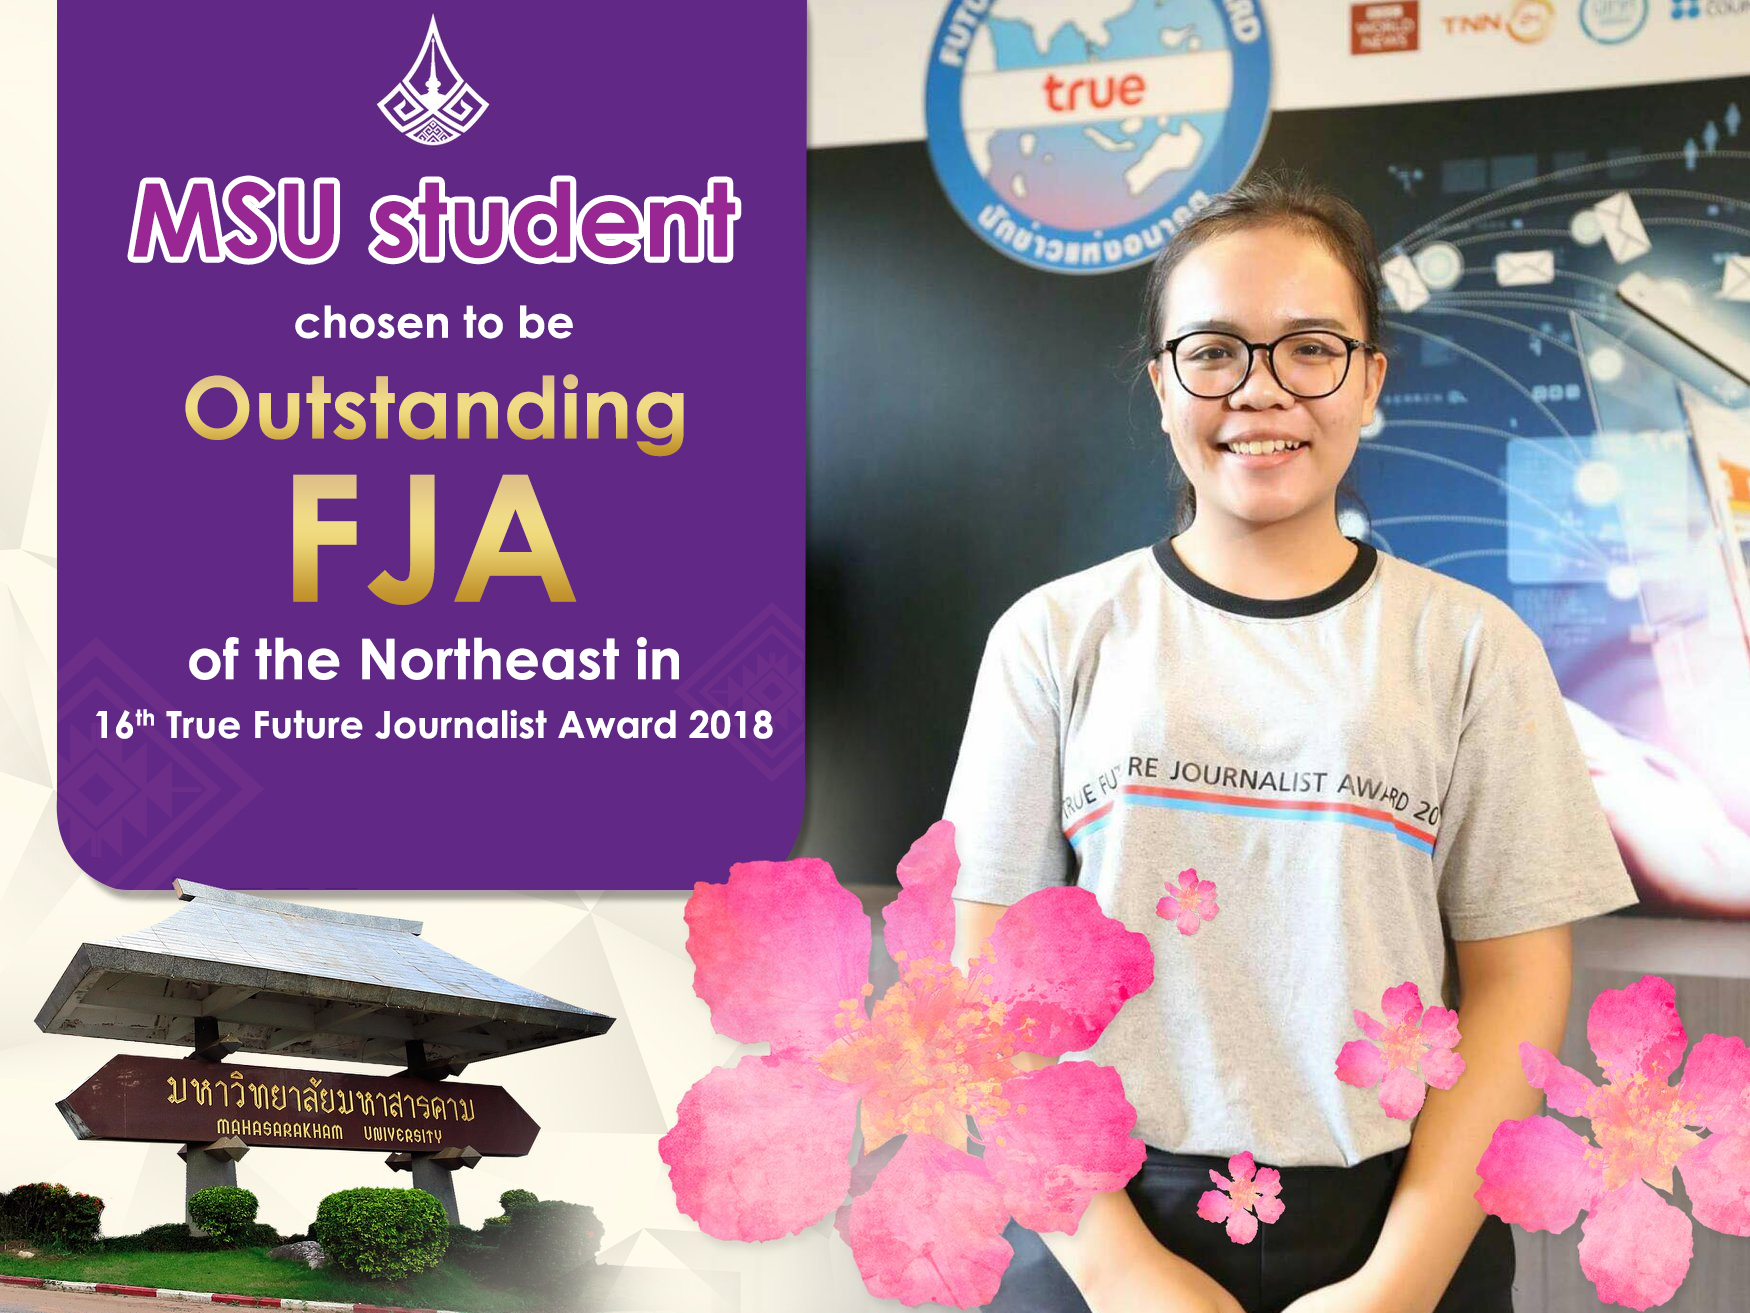 MSU student chosen to be Outstanding FJA of the Northeast in 16th True Future Journalist Award 2018